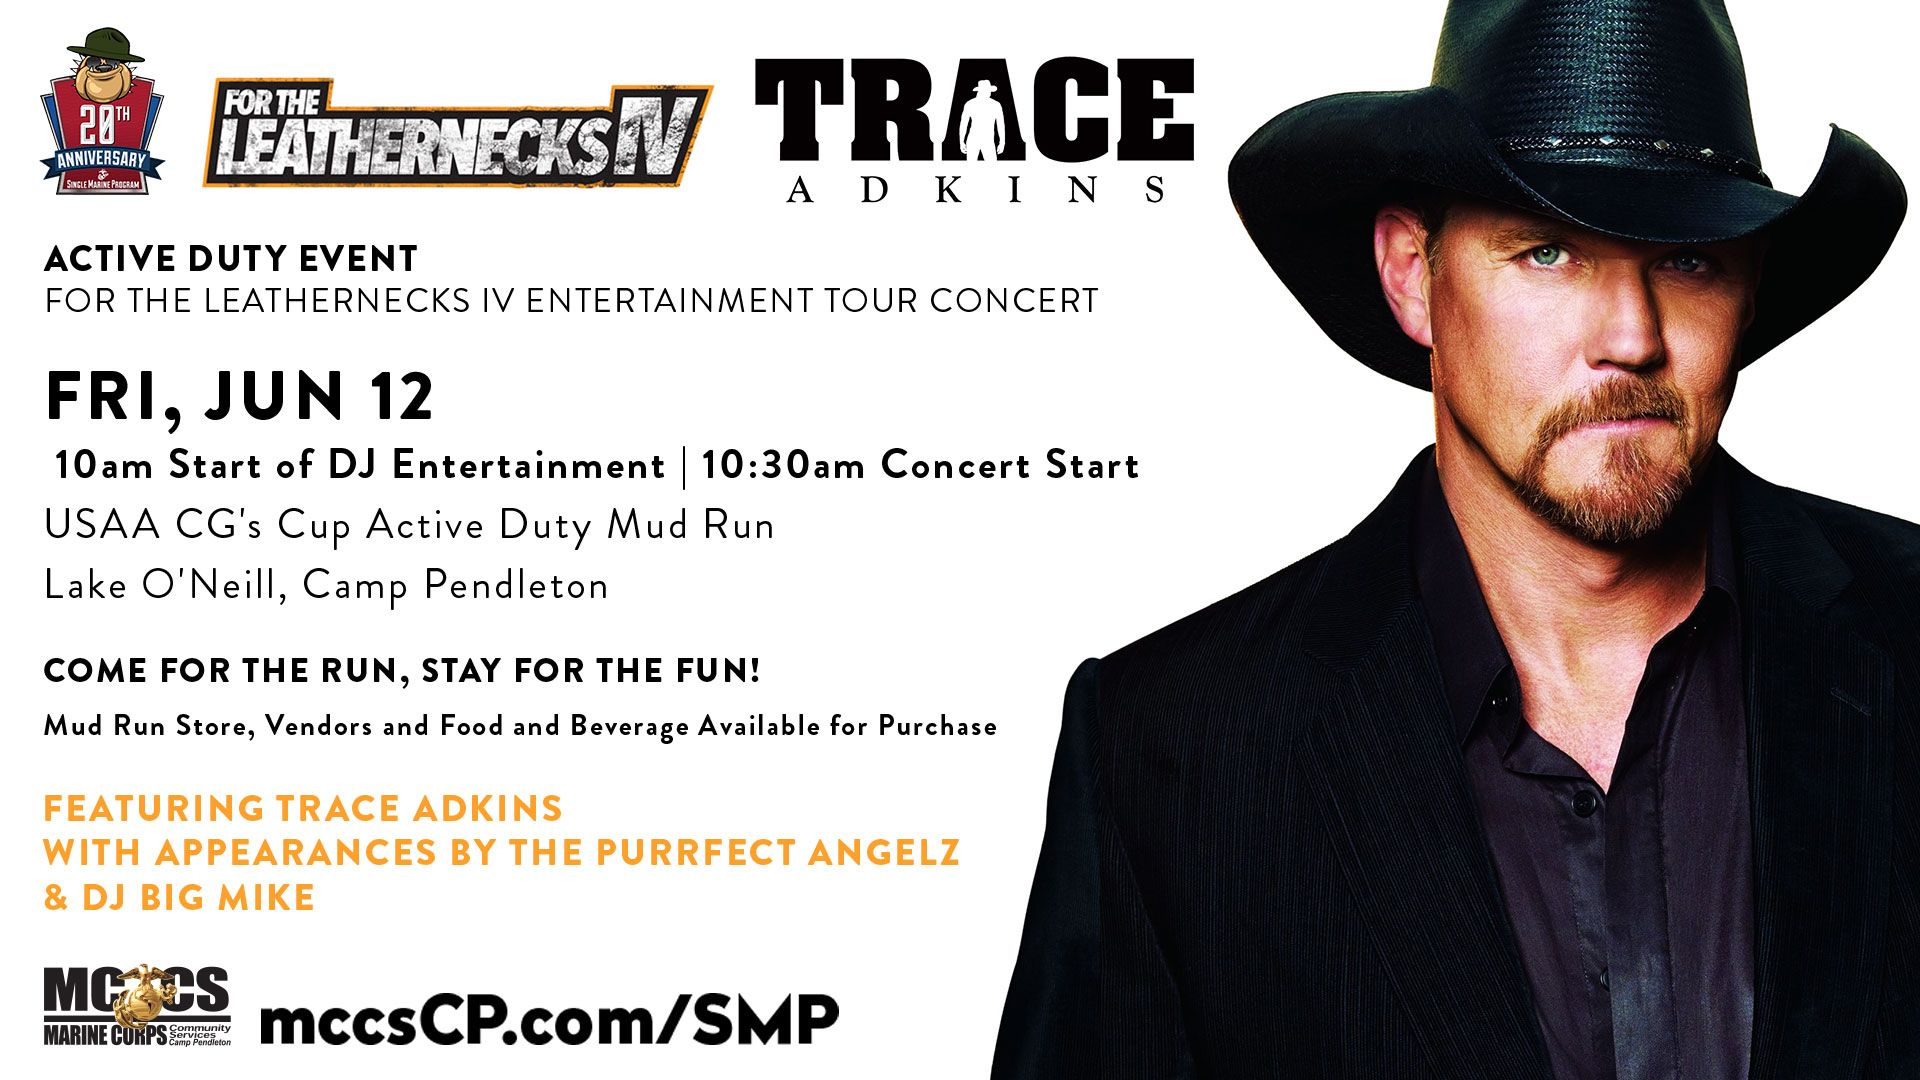 Jun 12 for the leathernecks iv featuring country singer trace jun 12 for the leathernecks iv featuring country singer trace adkins with appearances by purrfect angelz and dj big mike at lake oneill kristyandbryce Choice Image